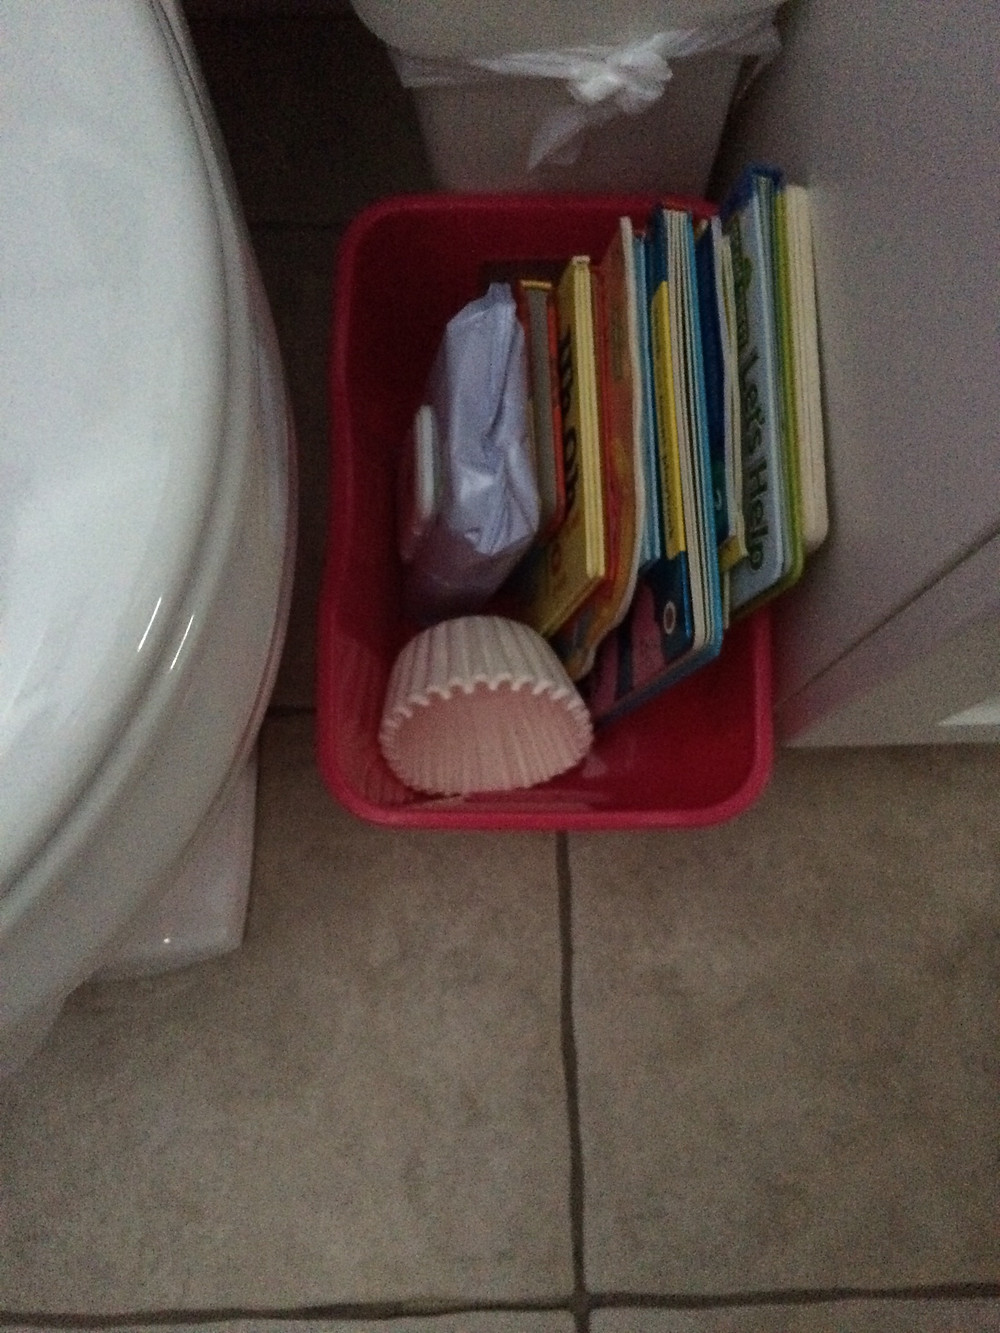 New books for potty training